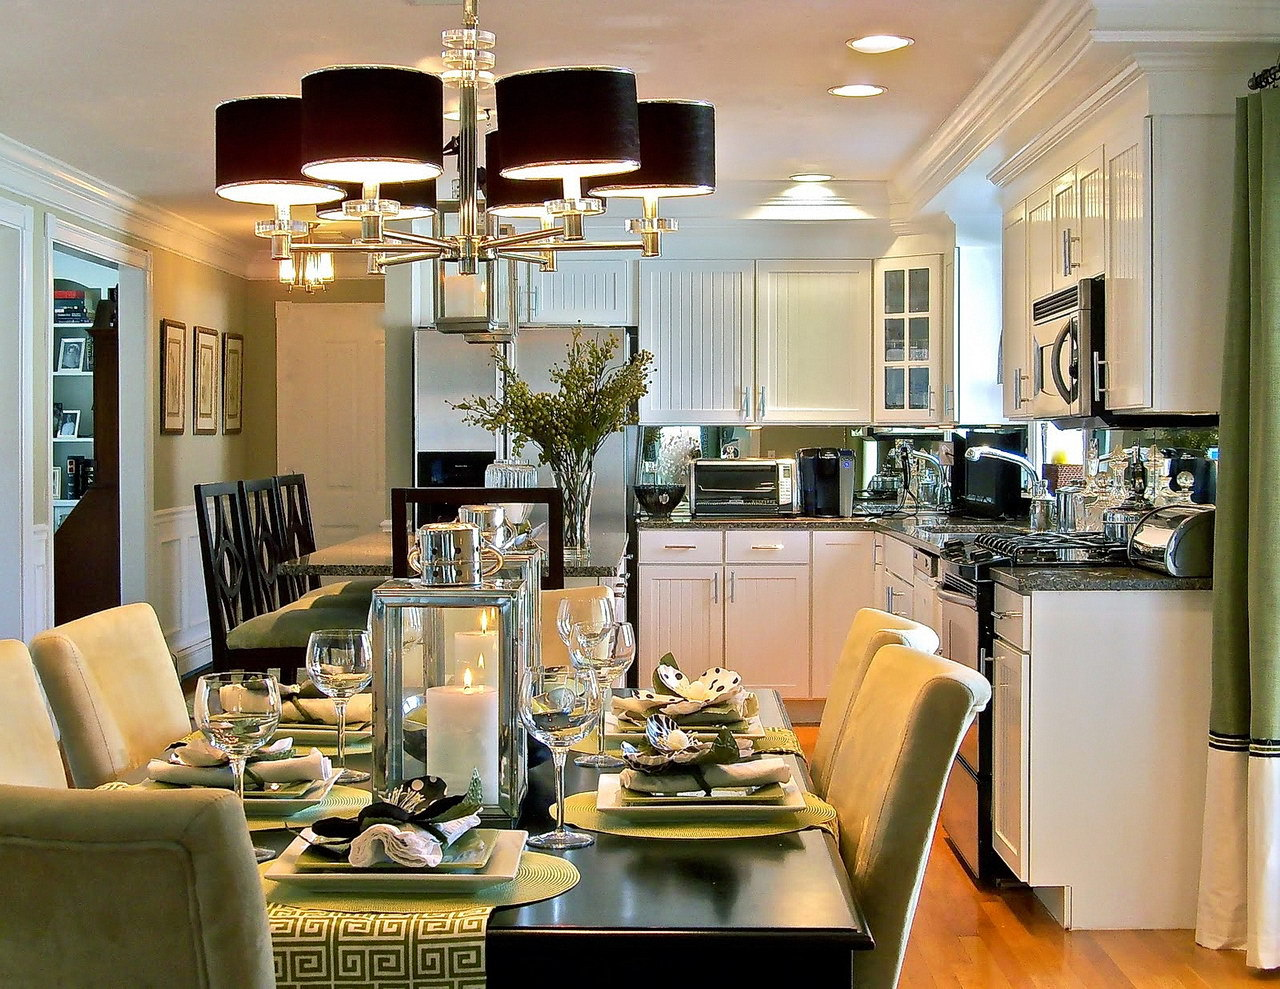 Kitchen Dining Design Photos 79 Handpicked Dining Room Ideas For Sweet Home Interior